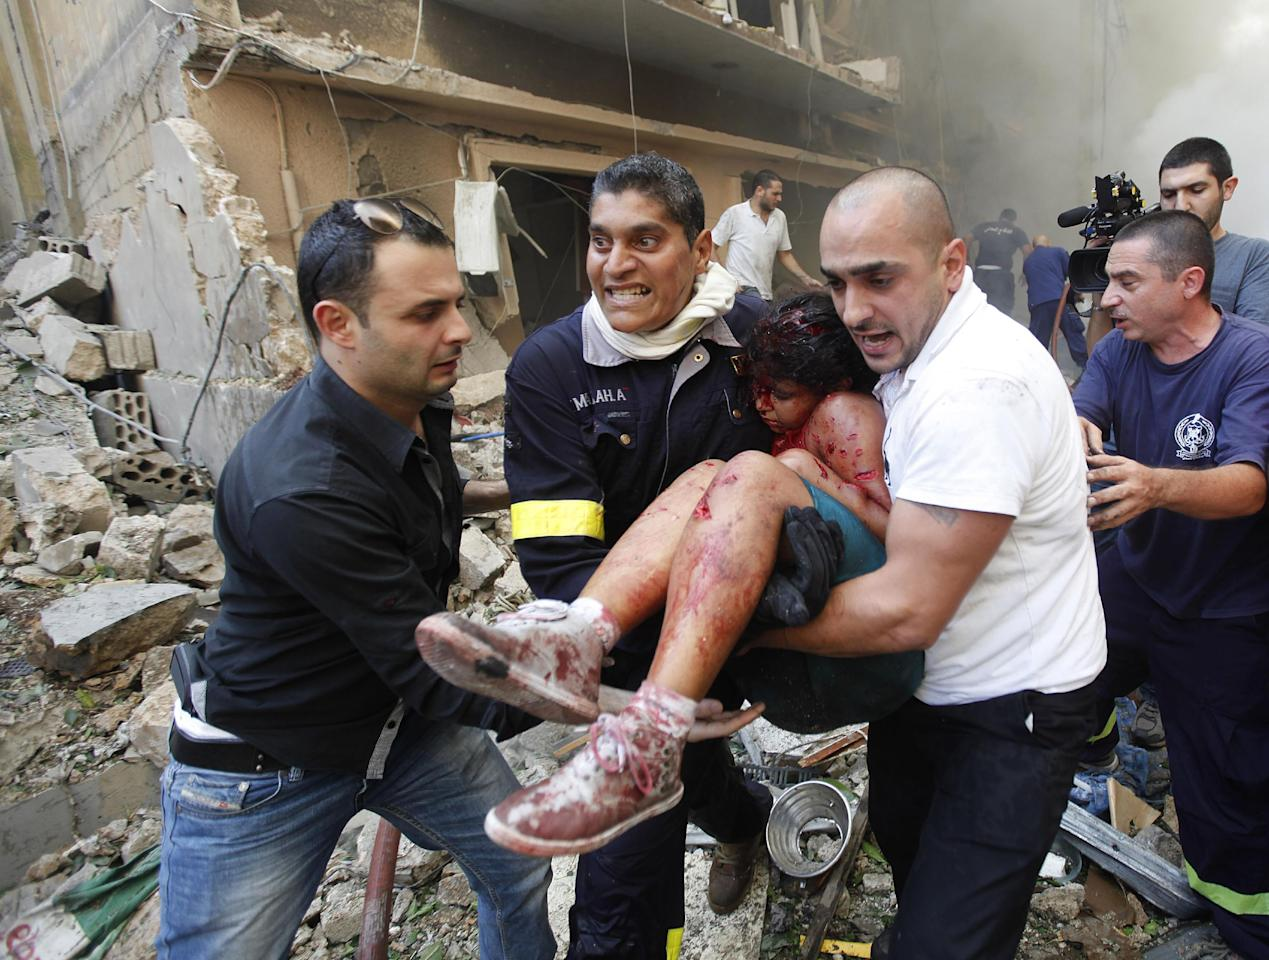 Lebanese rescue workers and civilians carry an injured girl from the scene of an explosion in the mostly Christian neighborhood of Achrafiyeh, Beirut, Lebanon, Friday Oct. 19, 2012. Lebanon's state news agency says a car bomb in east Beirut has killed at least six people and wounded scores in the worst blast the city has seen in years, coming at a time when Lebanon has seen a rise in tension and eruptions of clashes stemming from the civil war in neighboring Syria.(AP Photo/Hussein Malla)